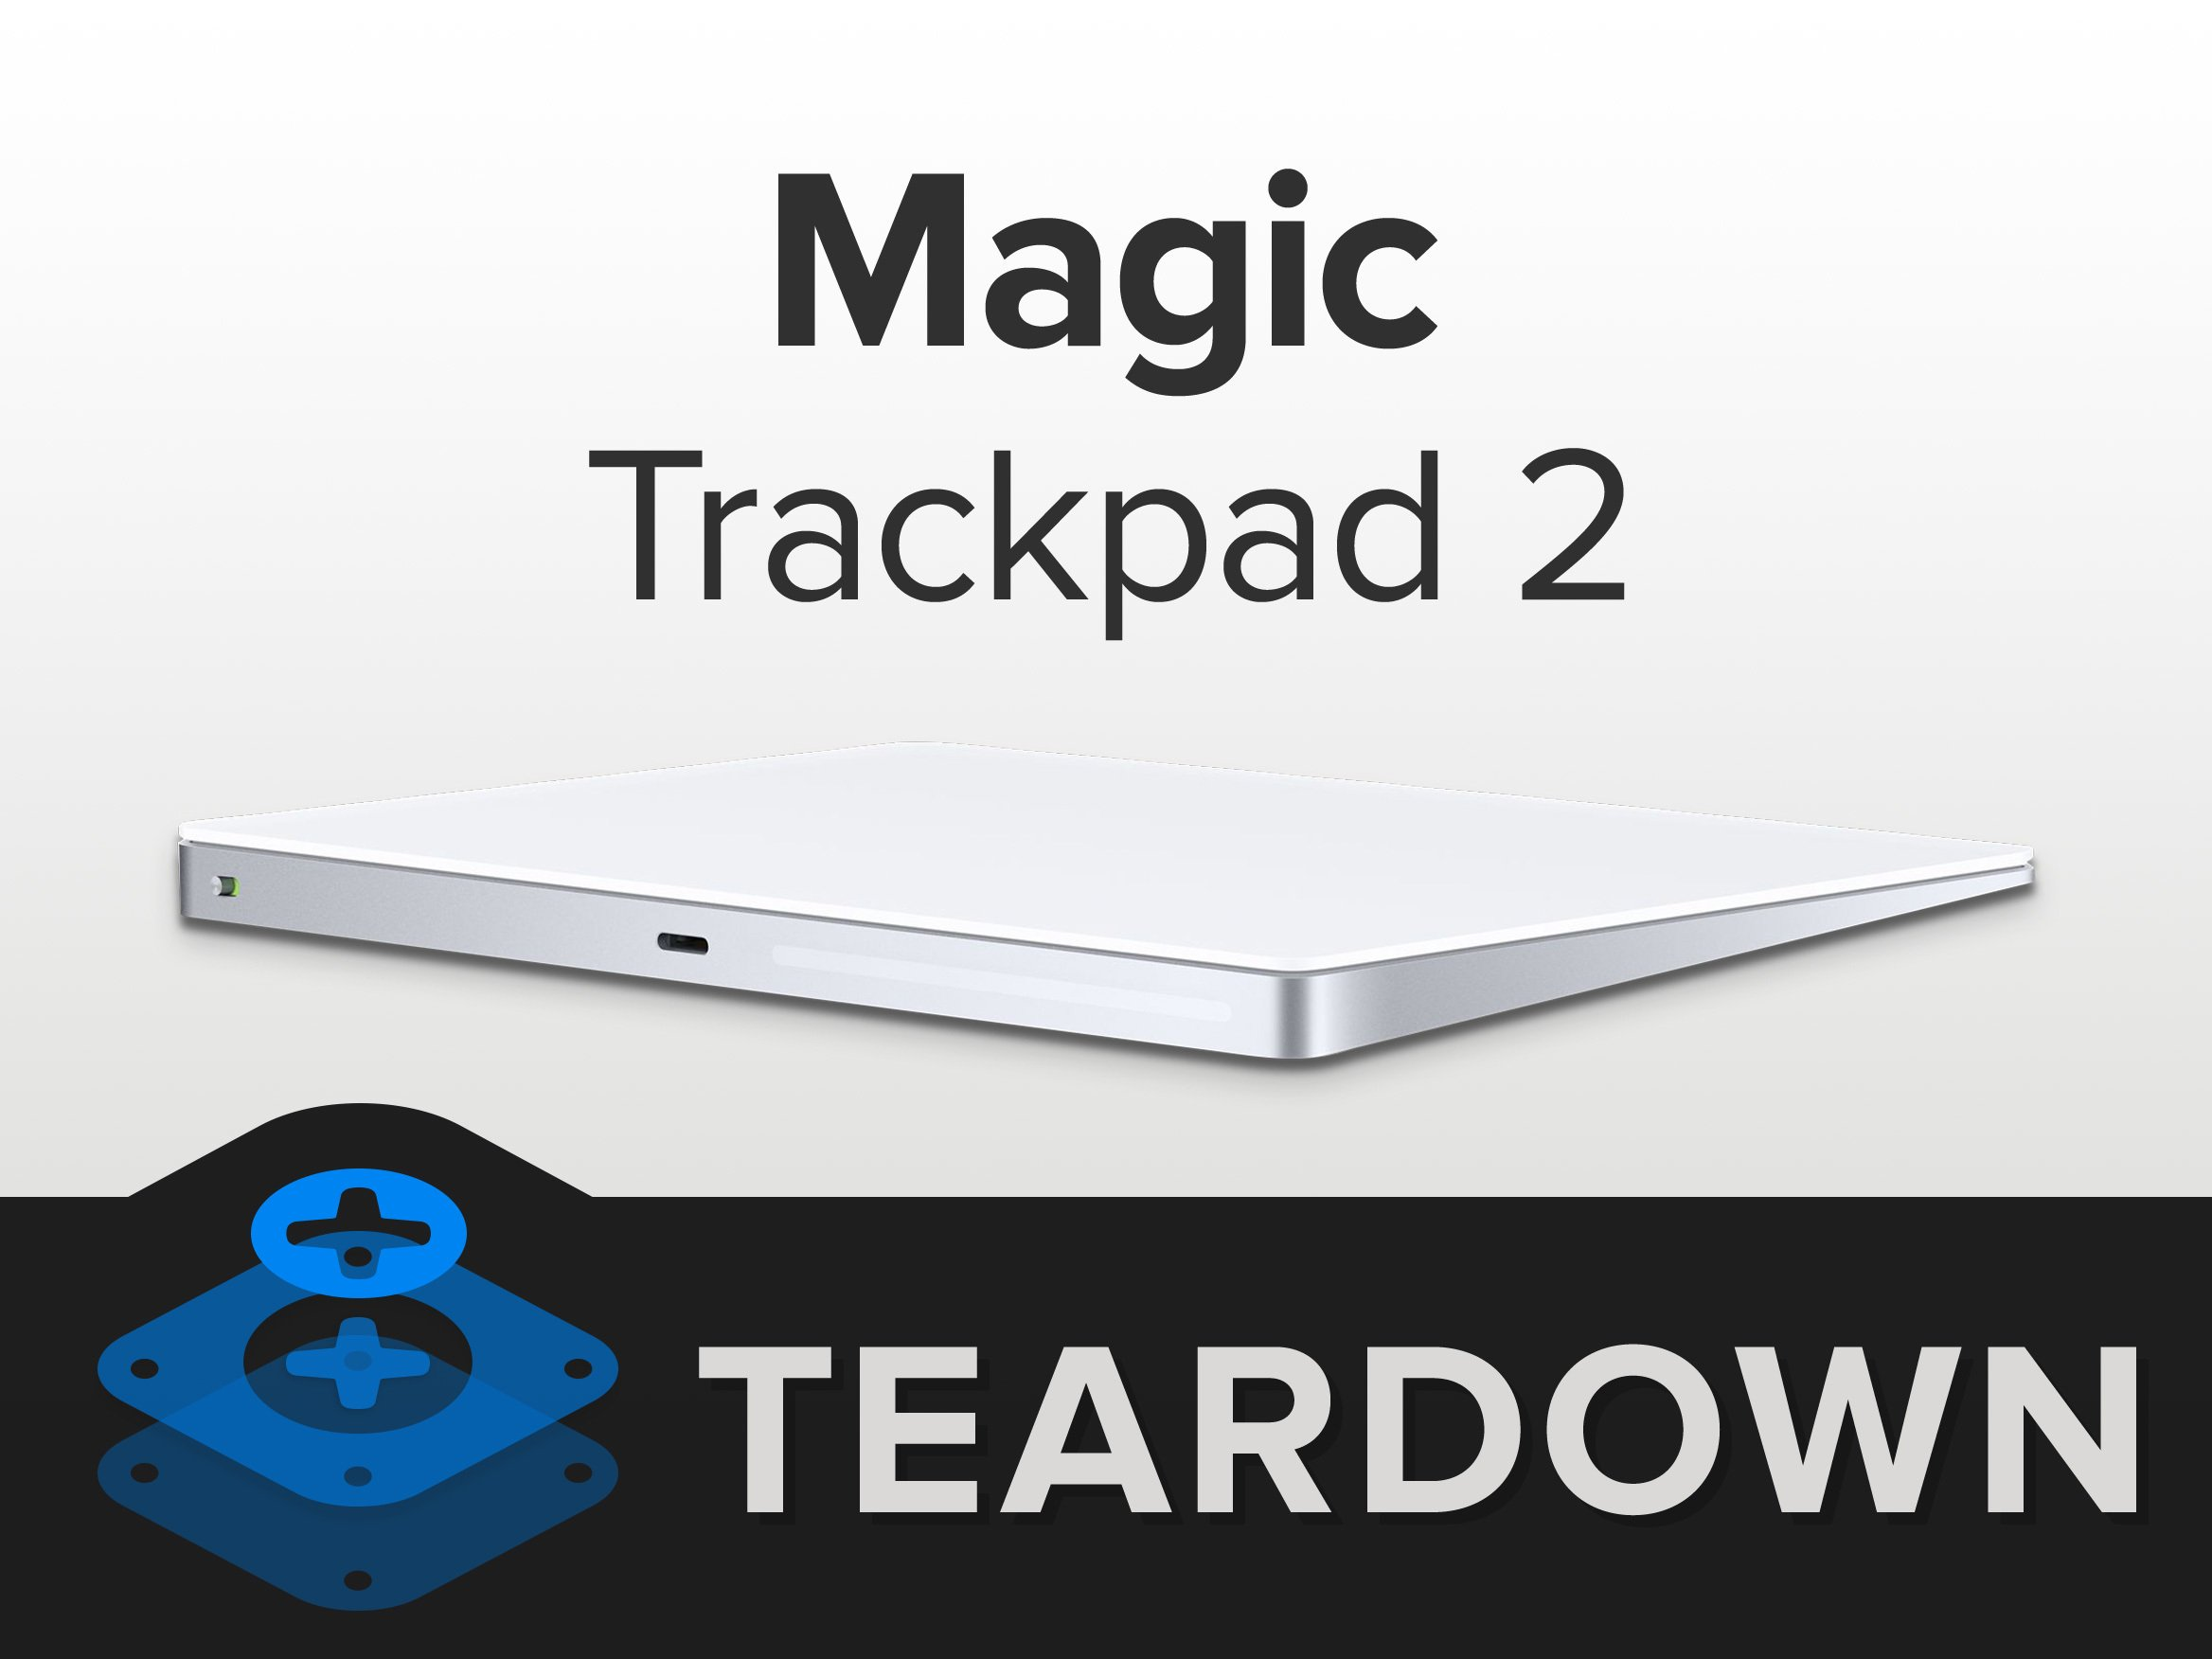 e55c2600144 Magic Trackpad 2 Teardown - iFixit